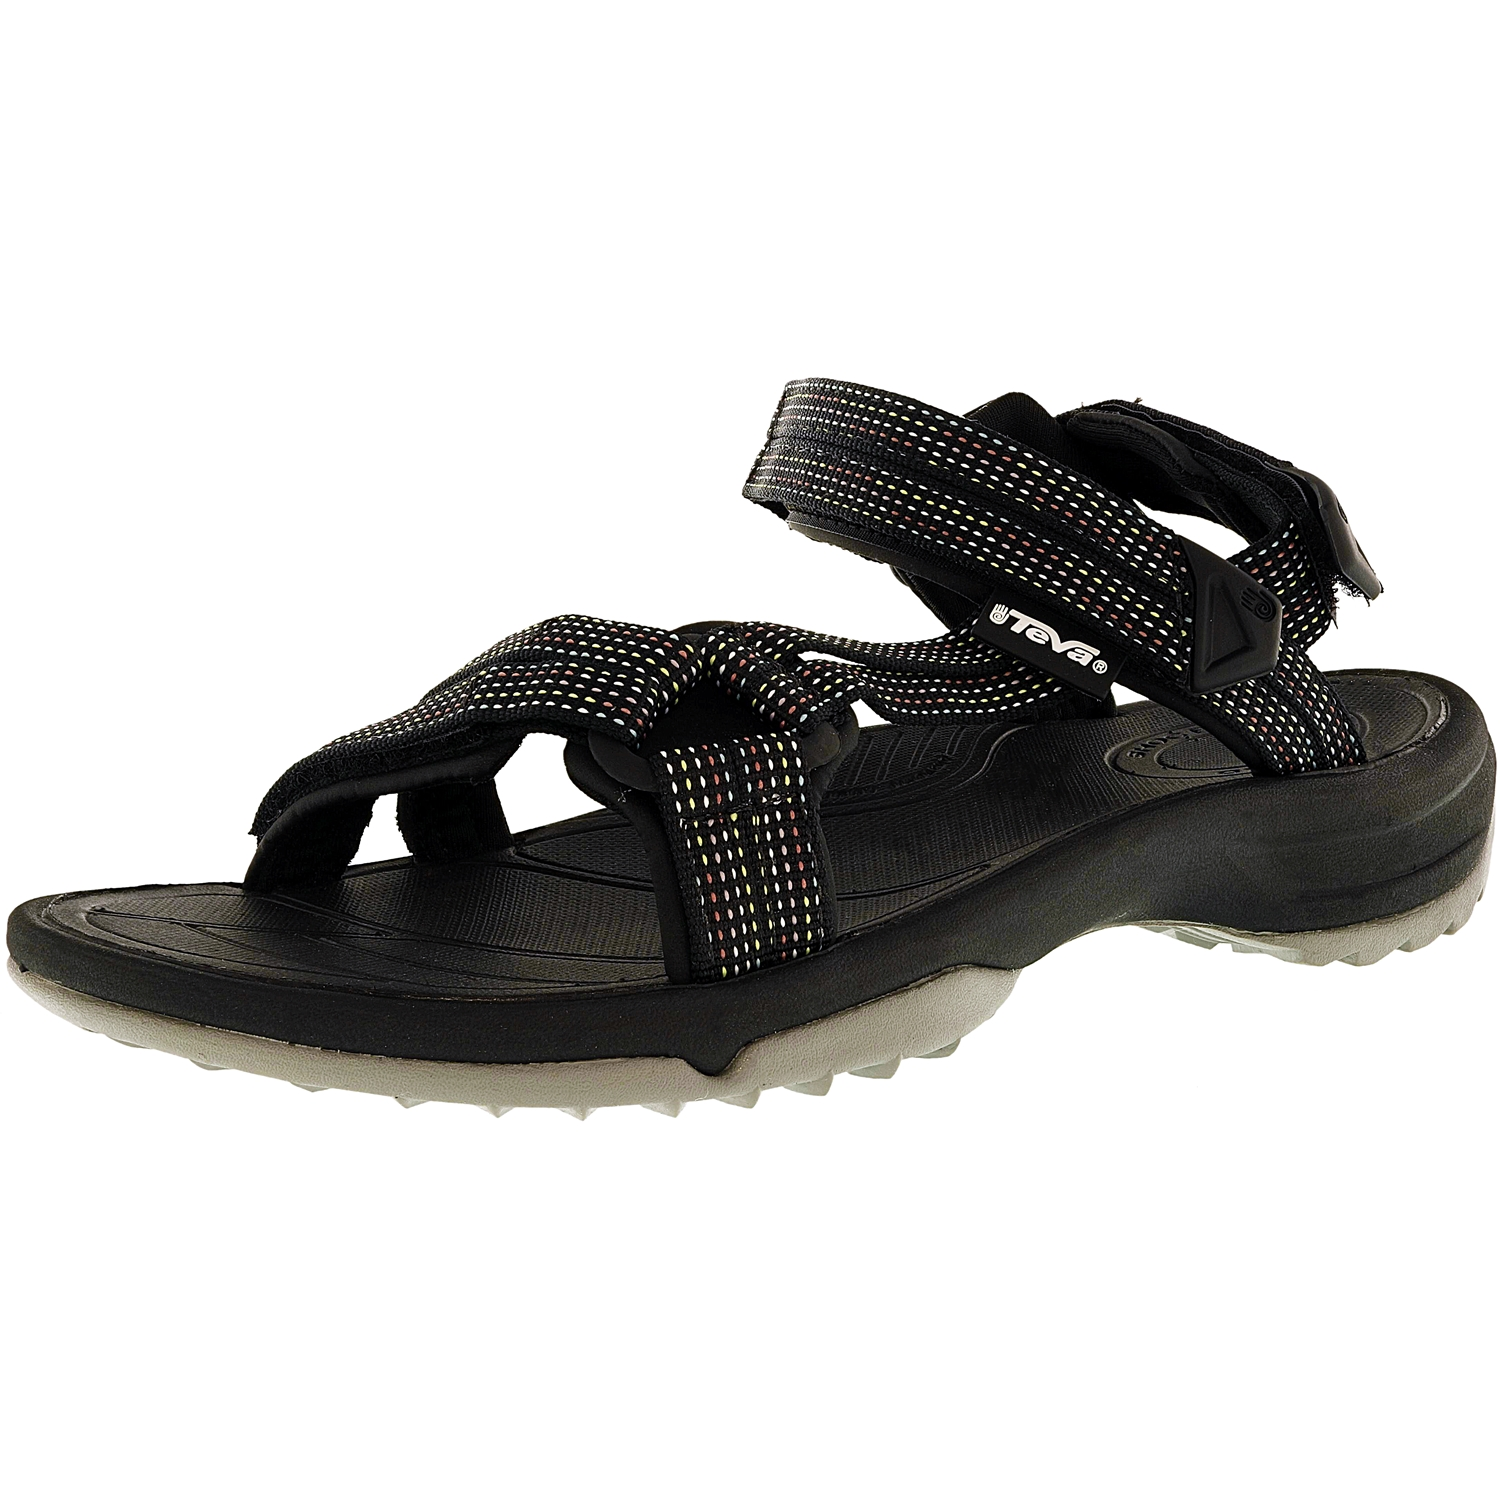 Teva Women's Terra Float Lite City Lights Black Fabric Sandal - 7M